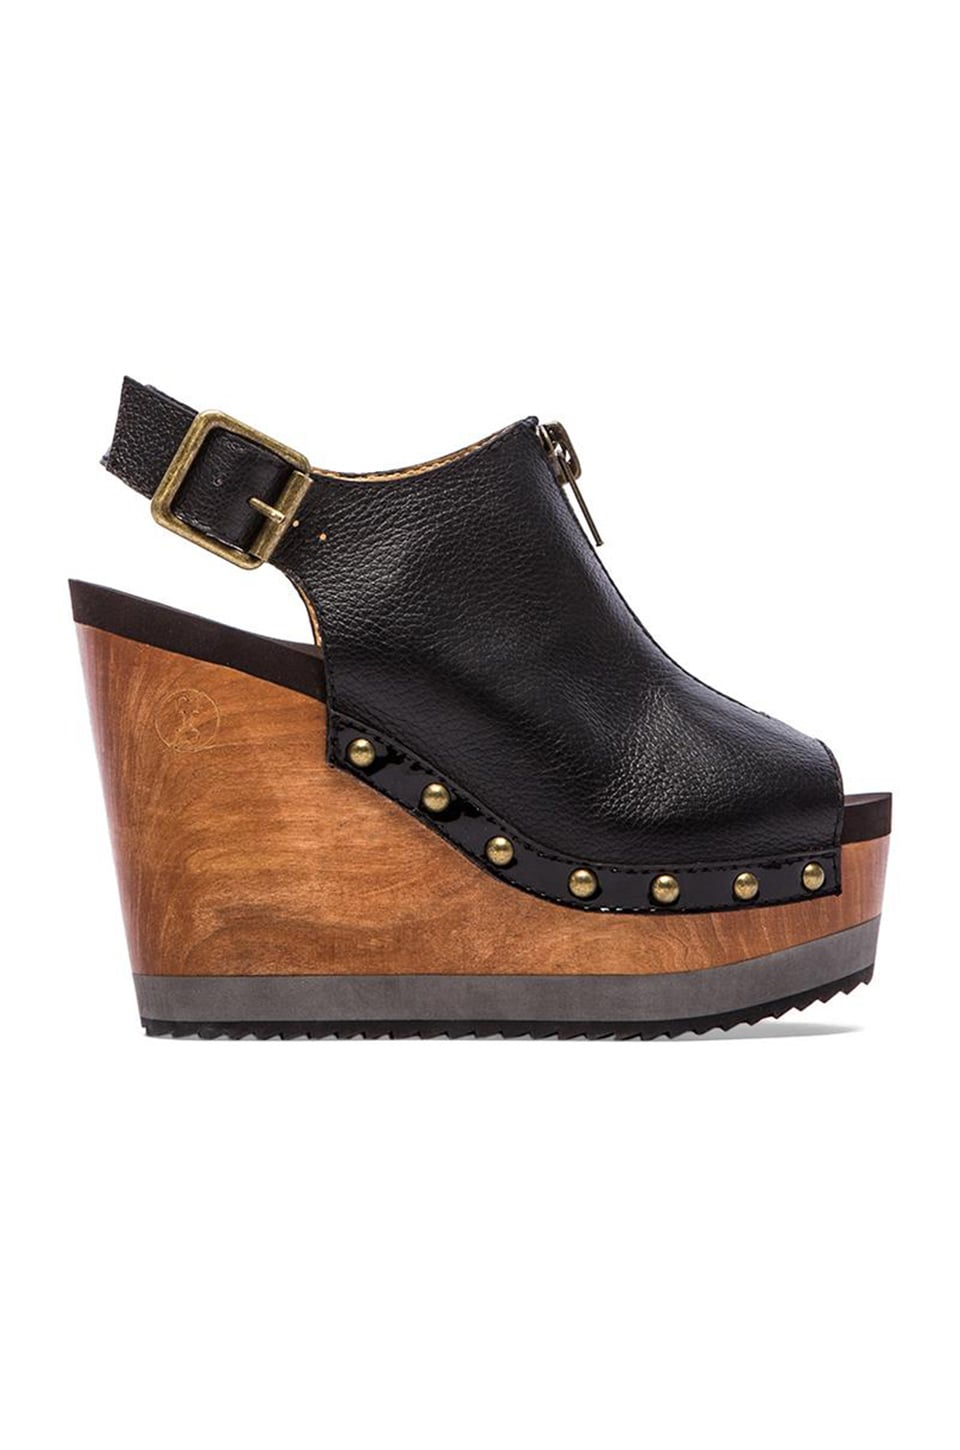 Flogg Chaya Wedge in Black